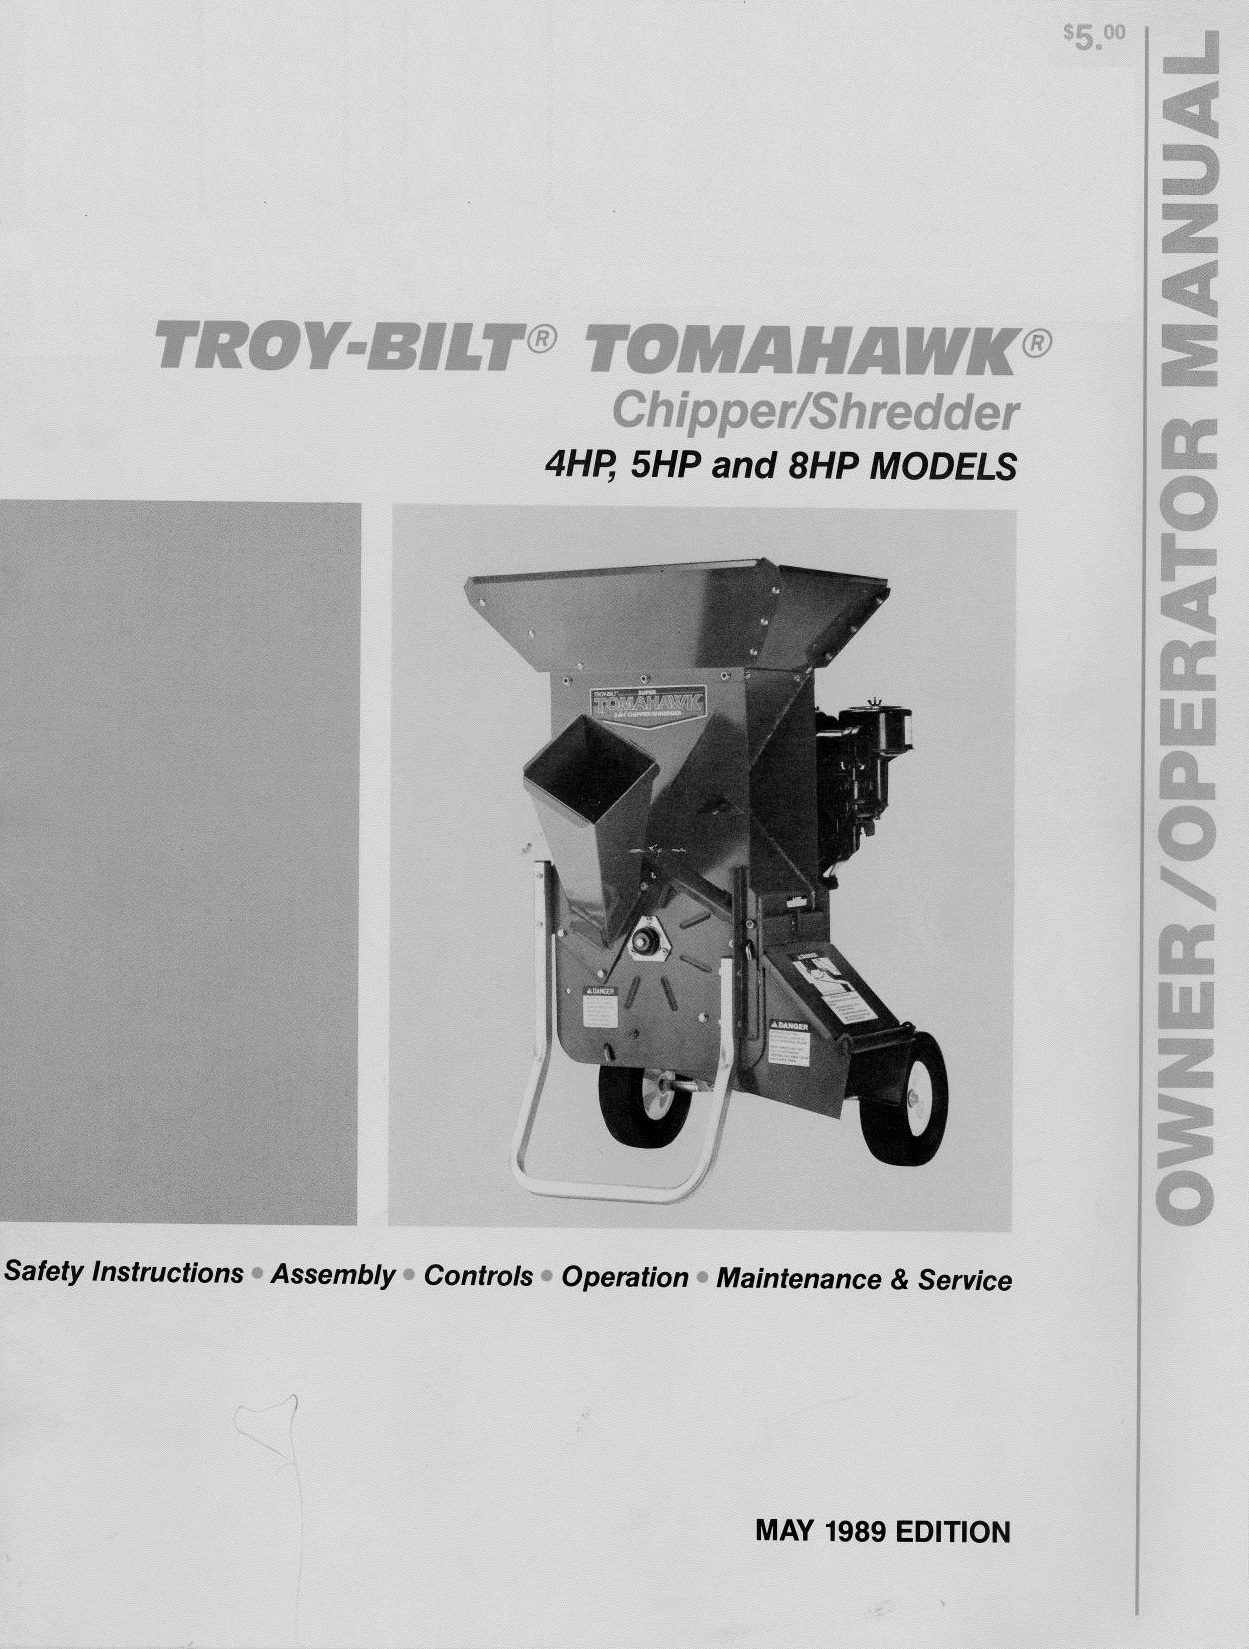 1989 Troy Bilt Tomahawk Chipper Shredder 40 Pages